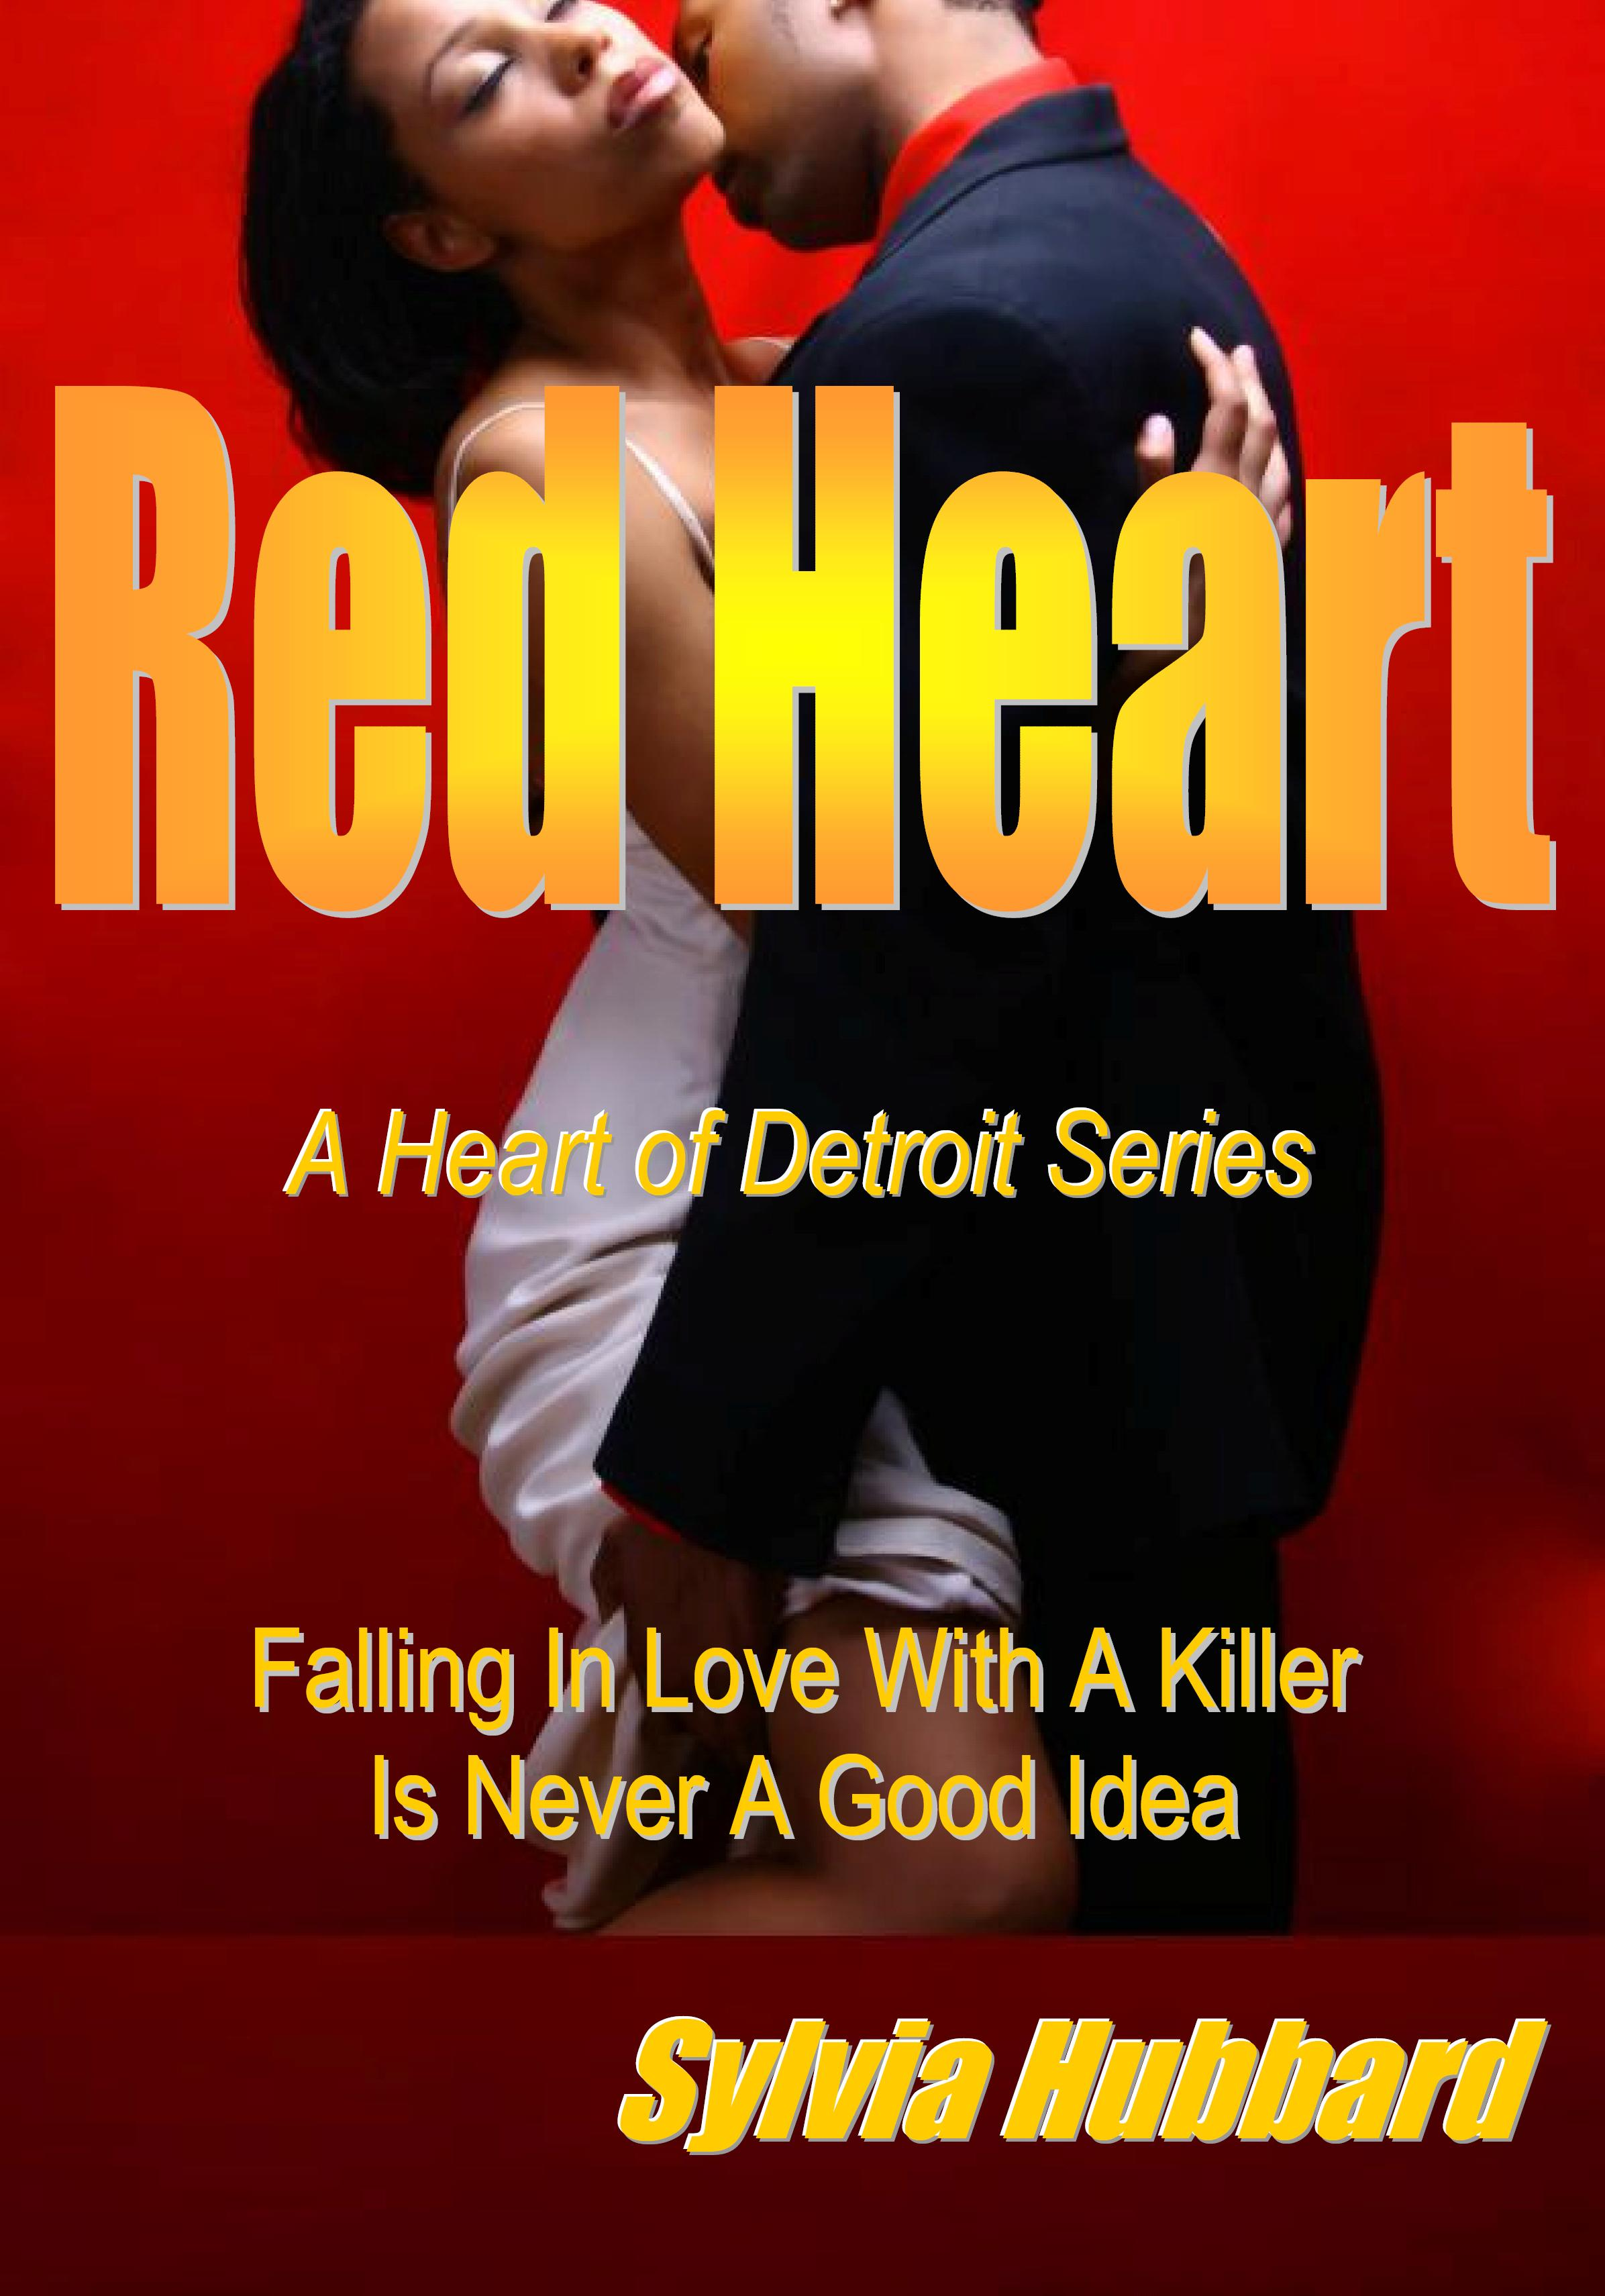 Red Heart 2011 new cover